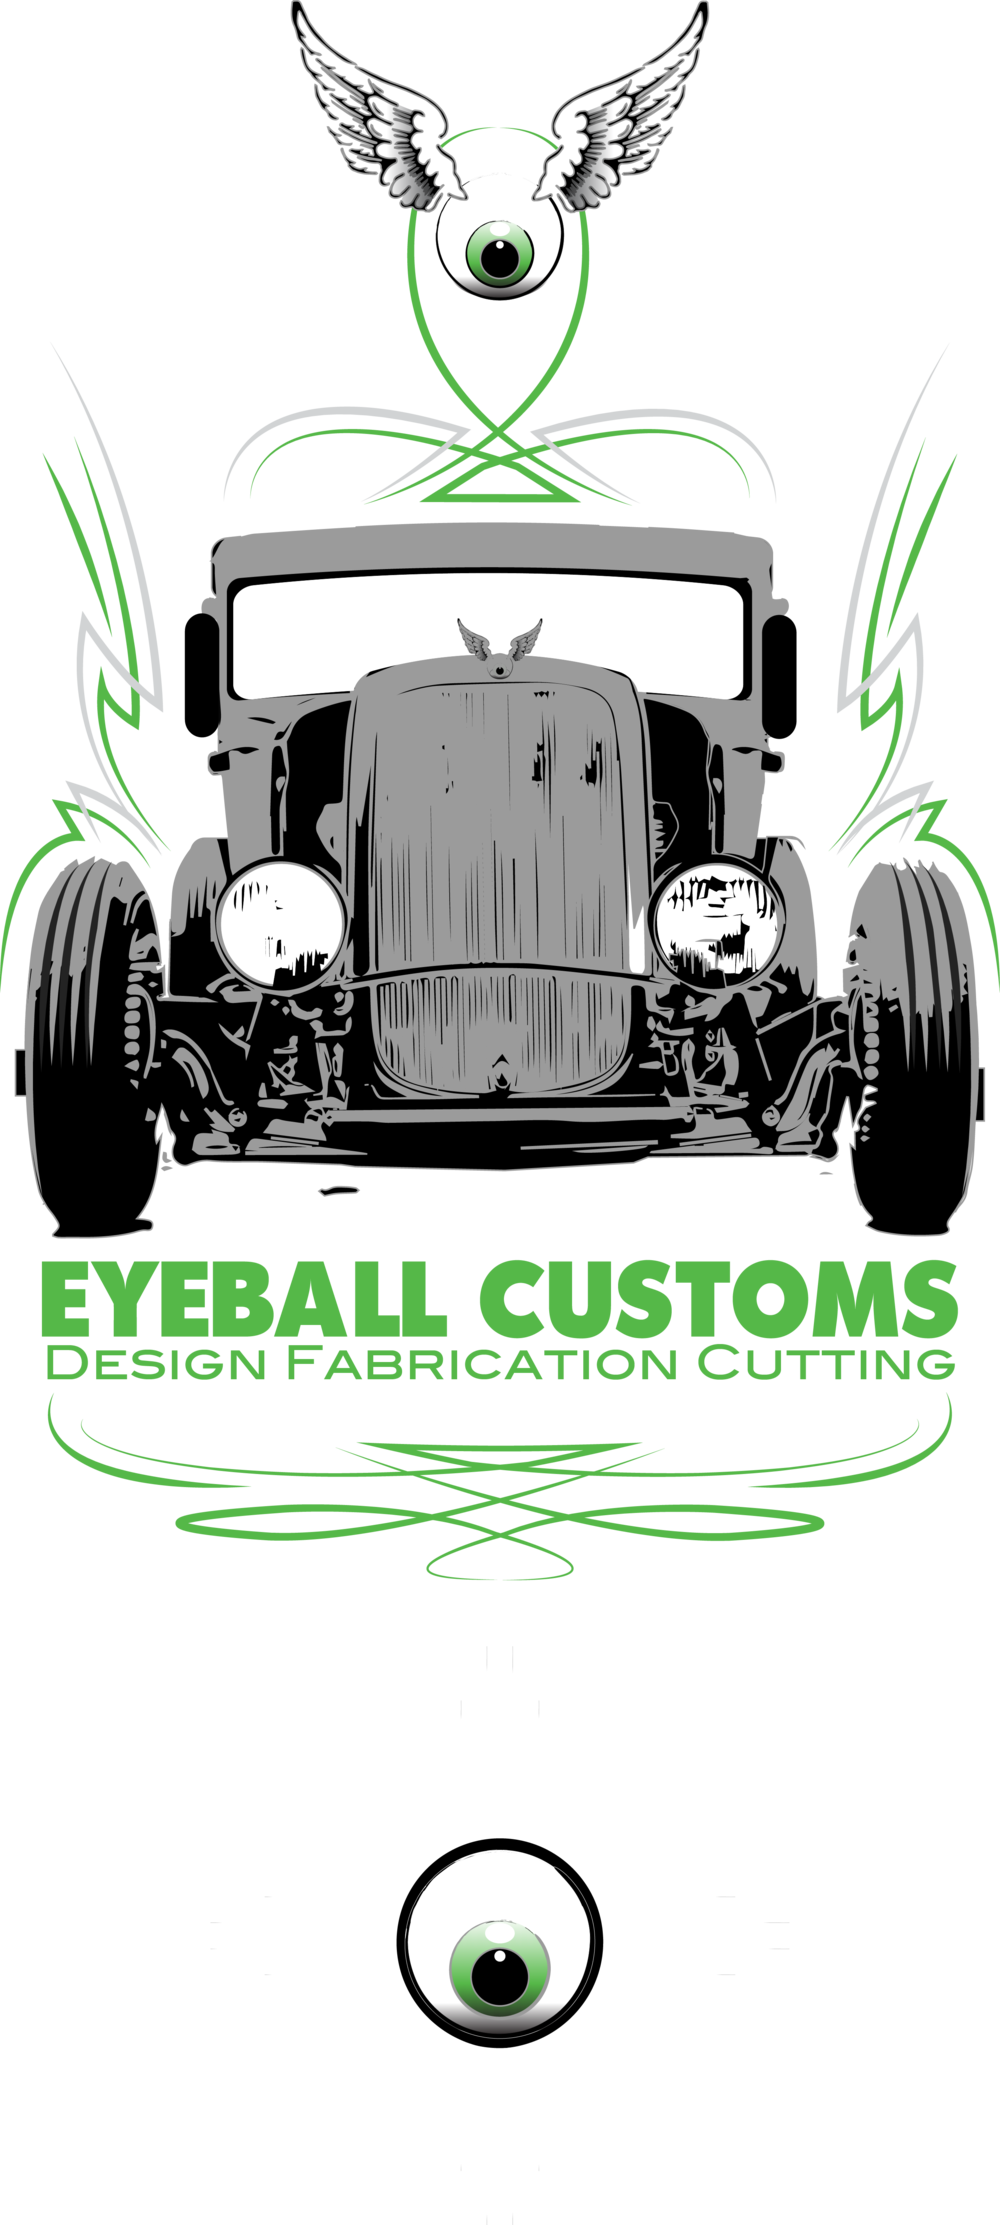 eyeball customs shirt.pdf.png